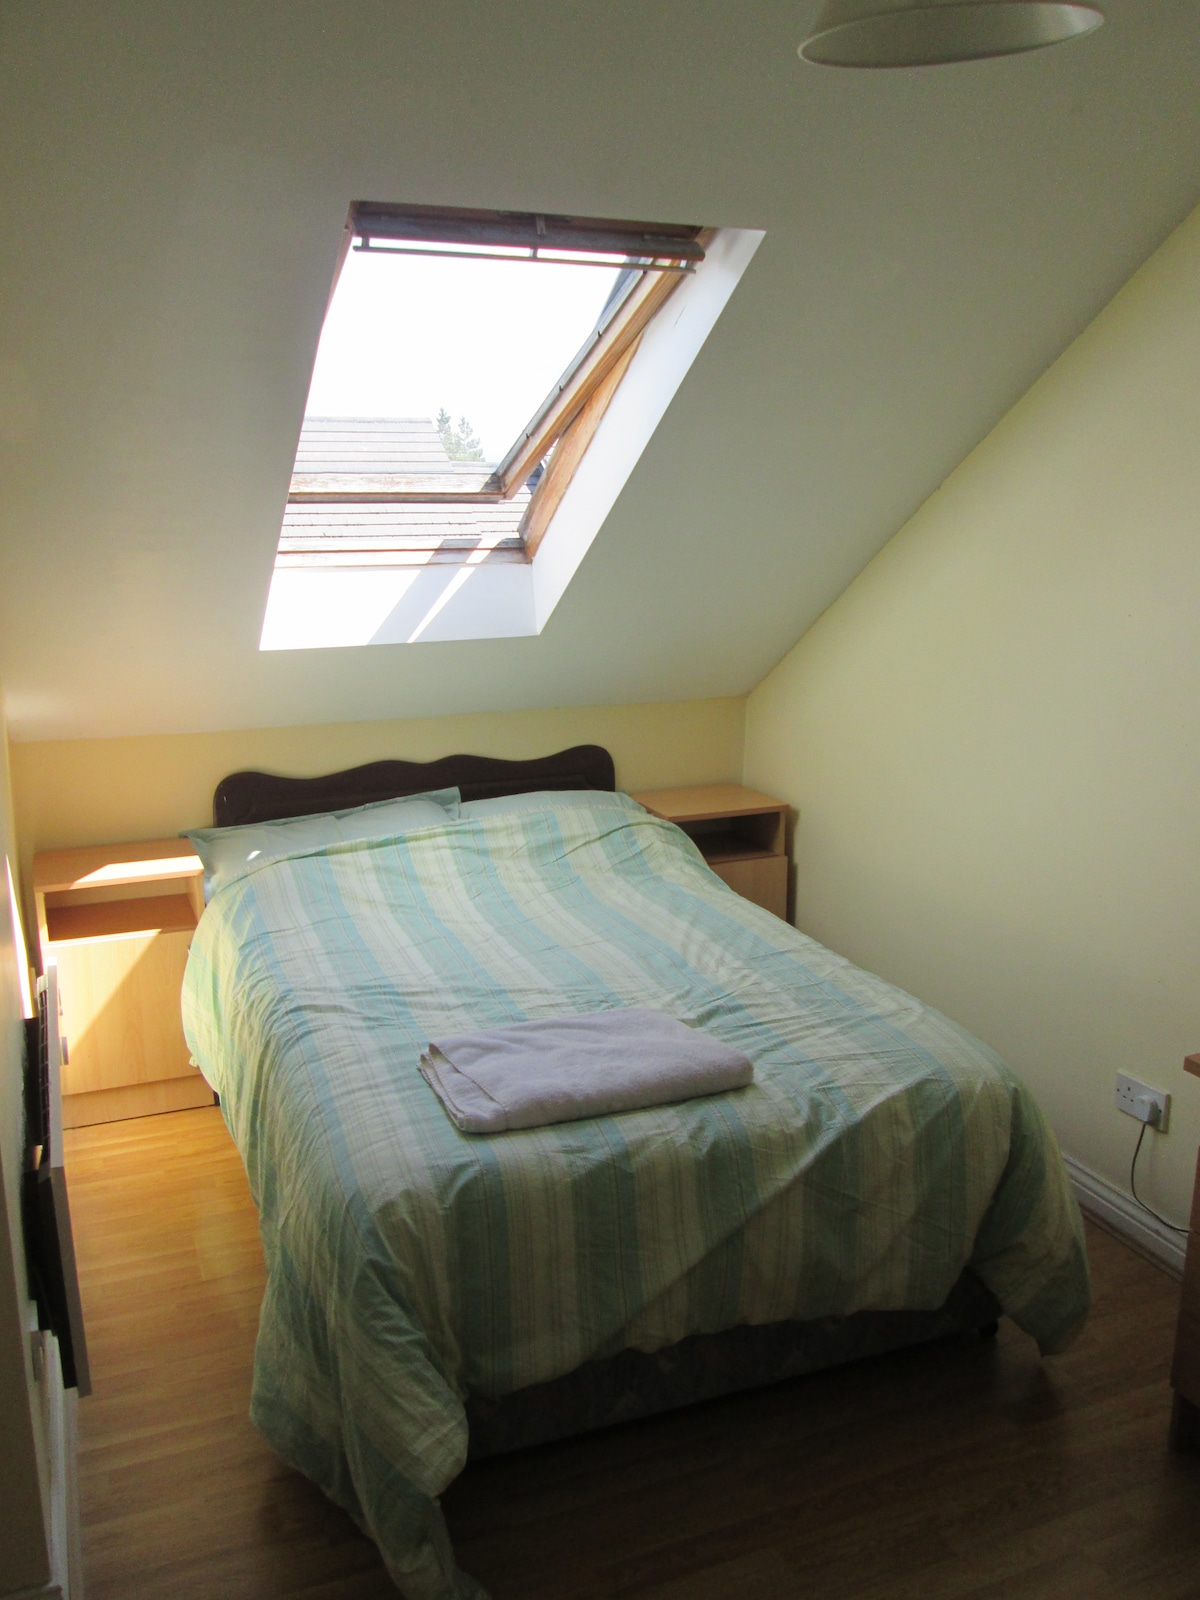 Ensuite bedroom in Salthill